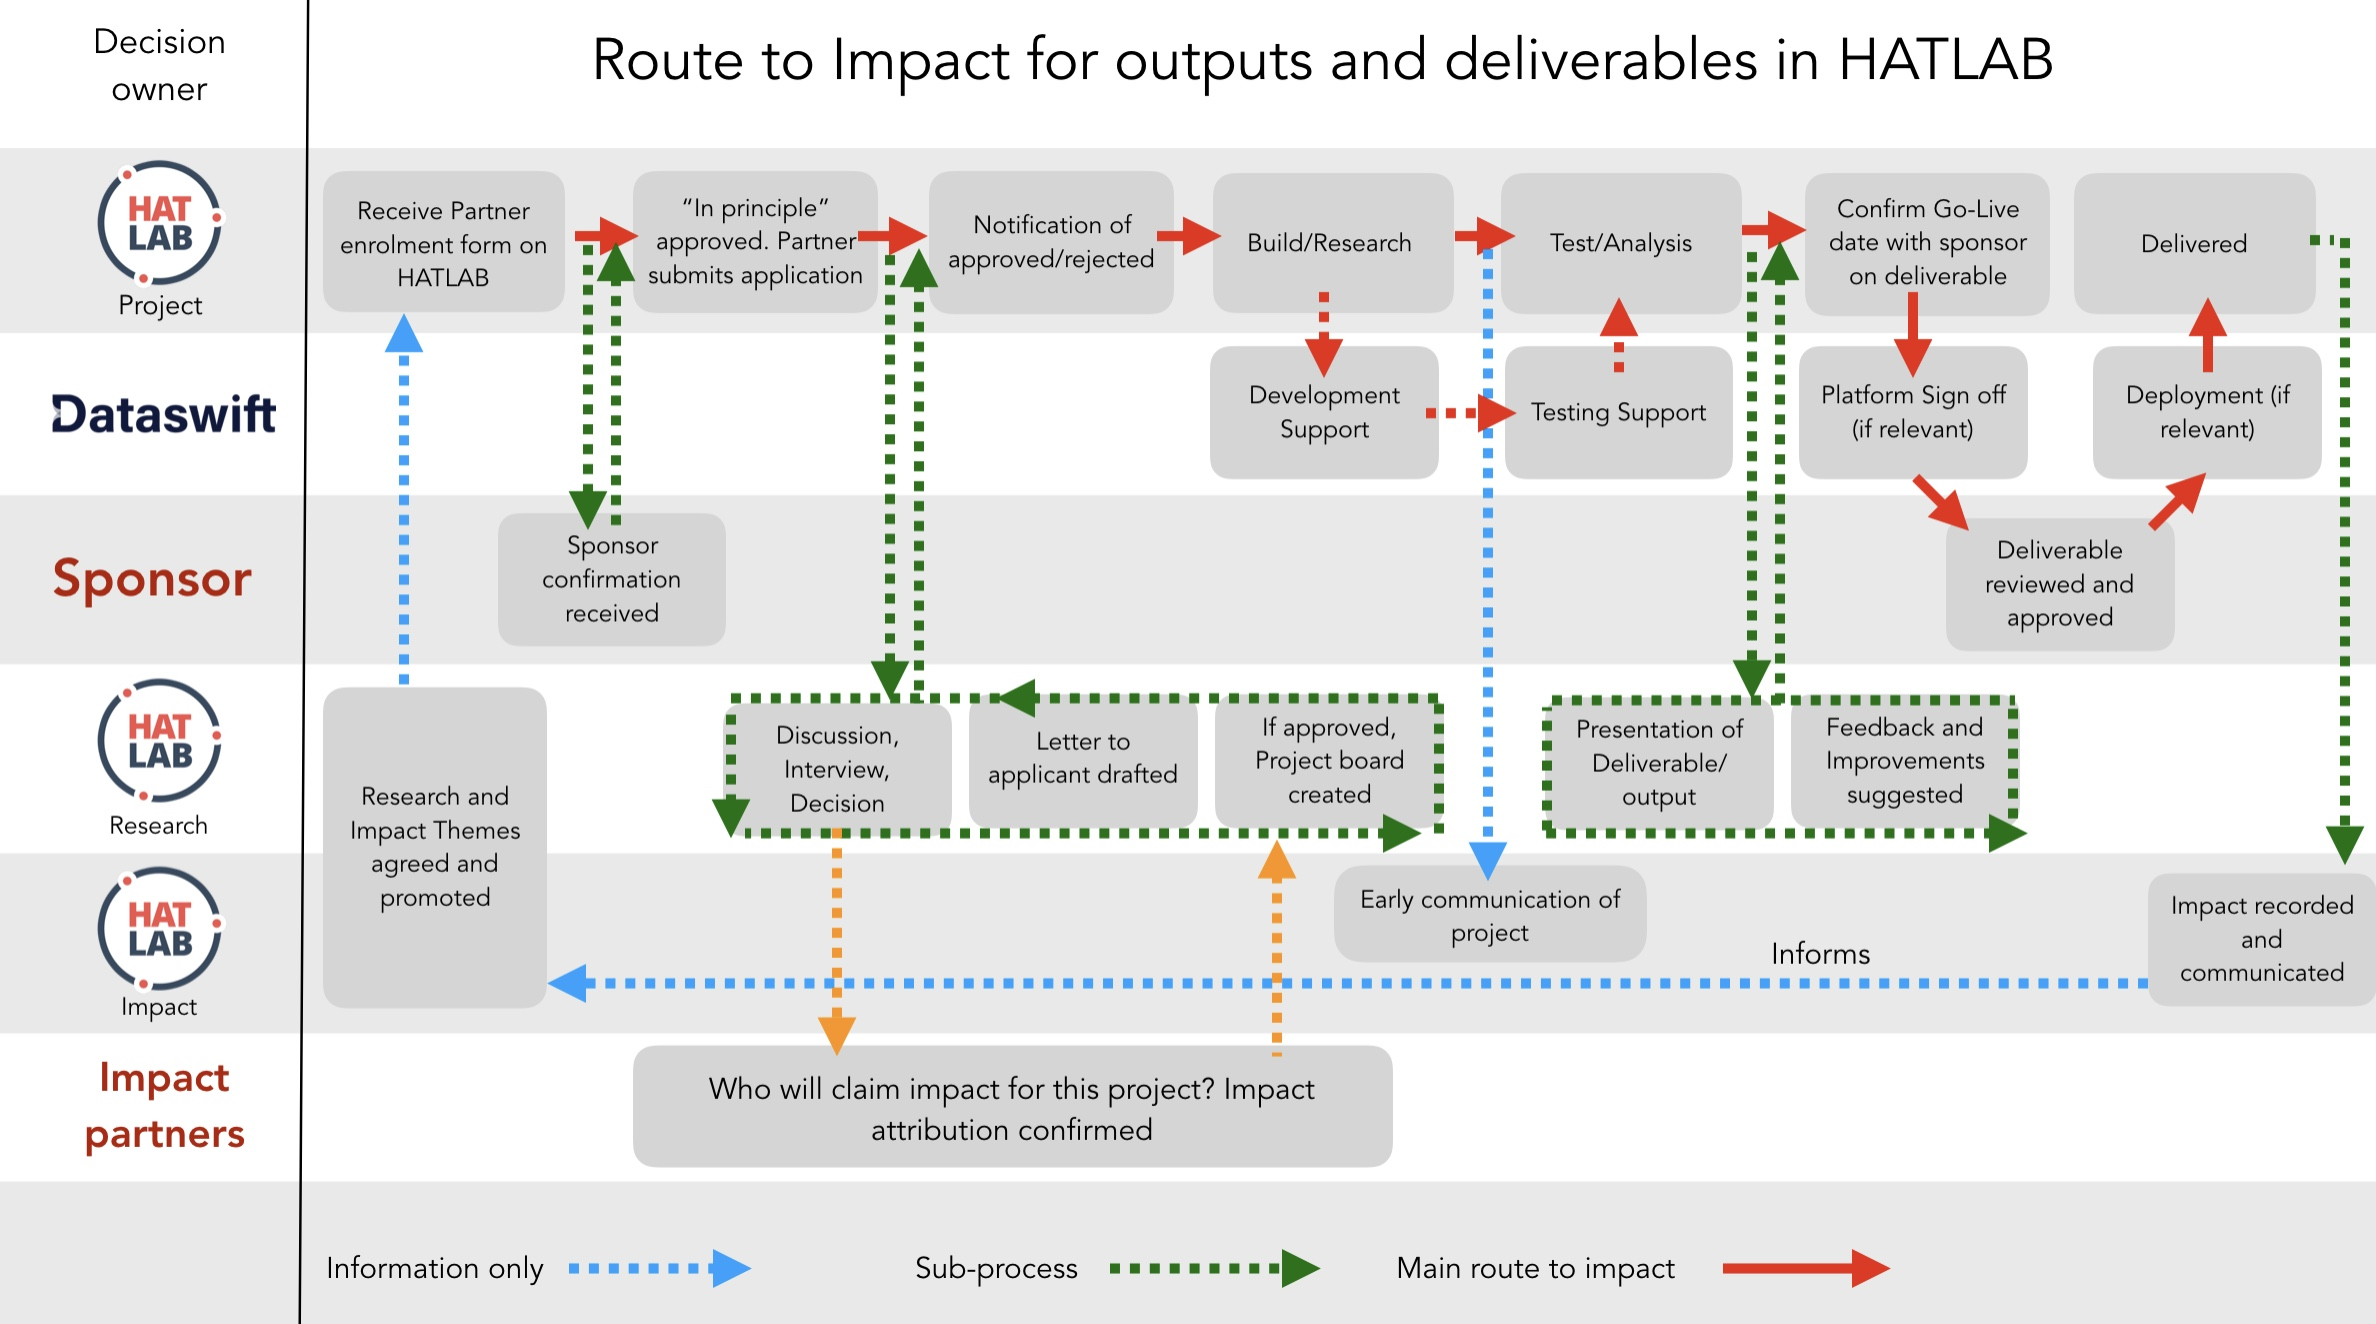 Route to Impact for Research and Innovation in the HAT ecosystem